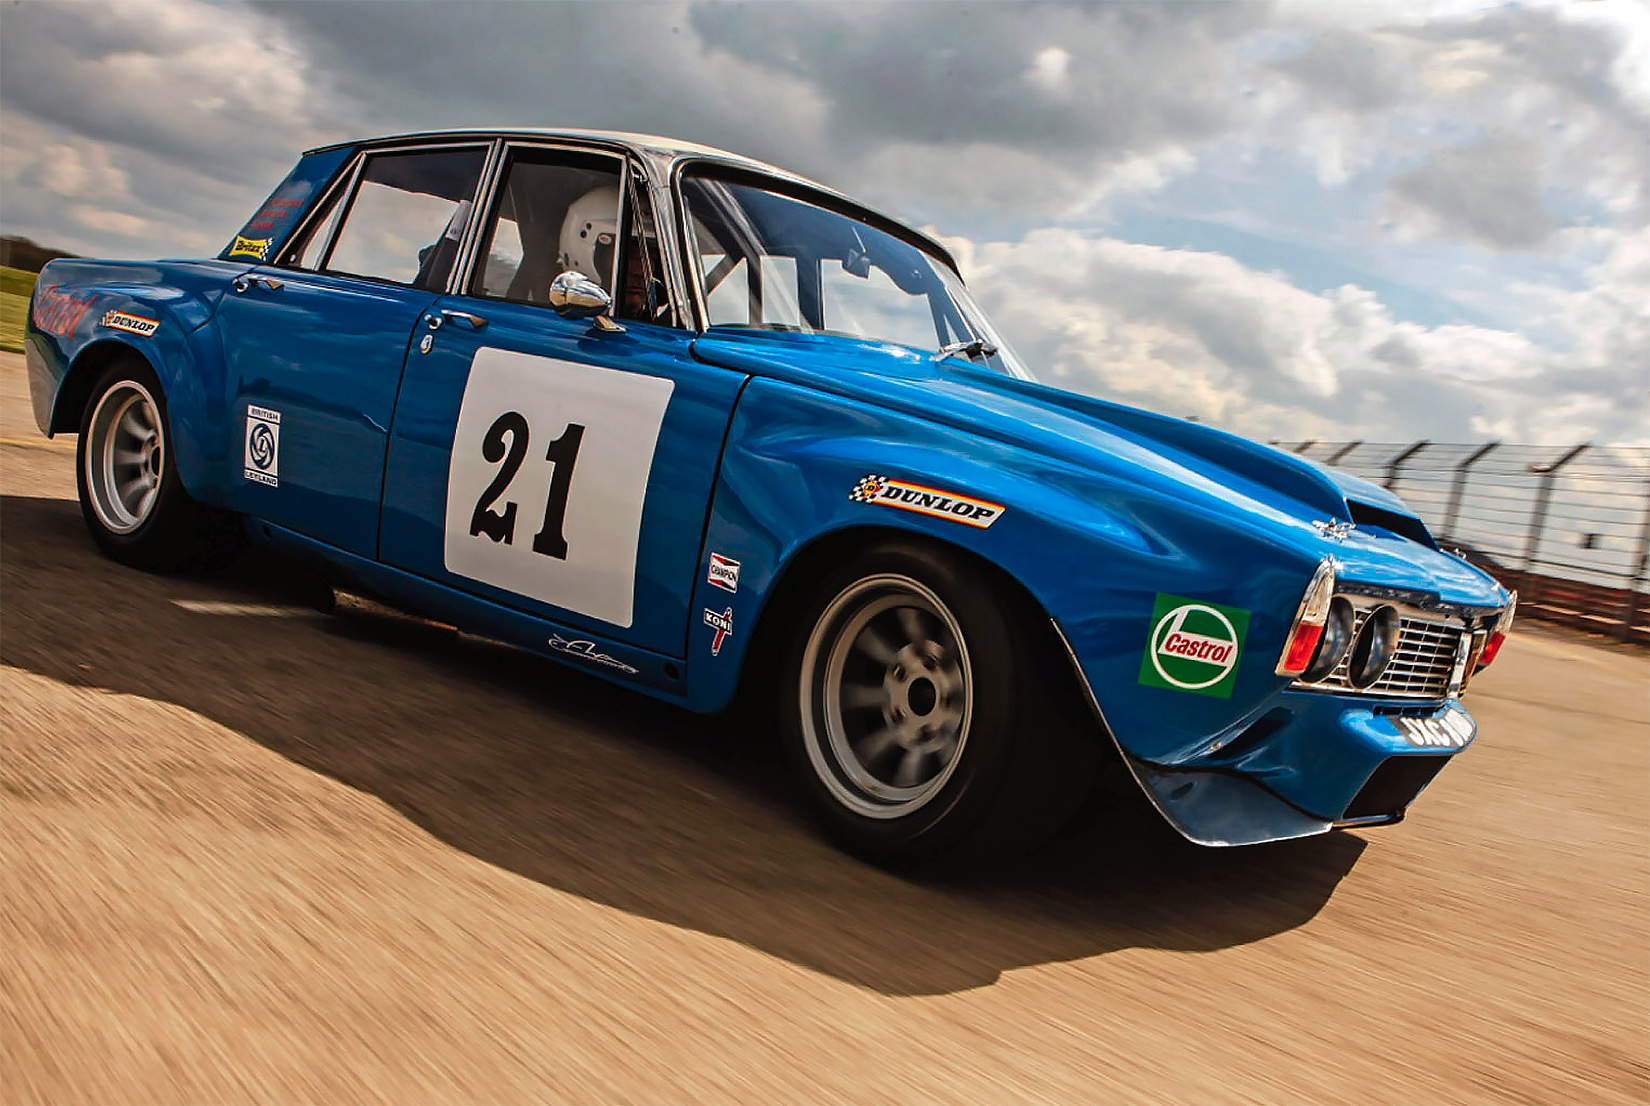 Rover P6 racing car - Drive